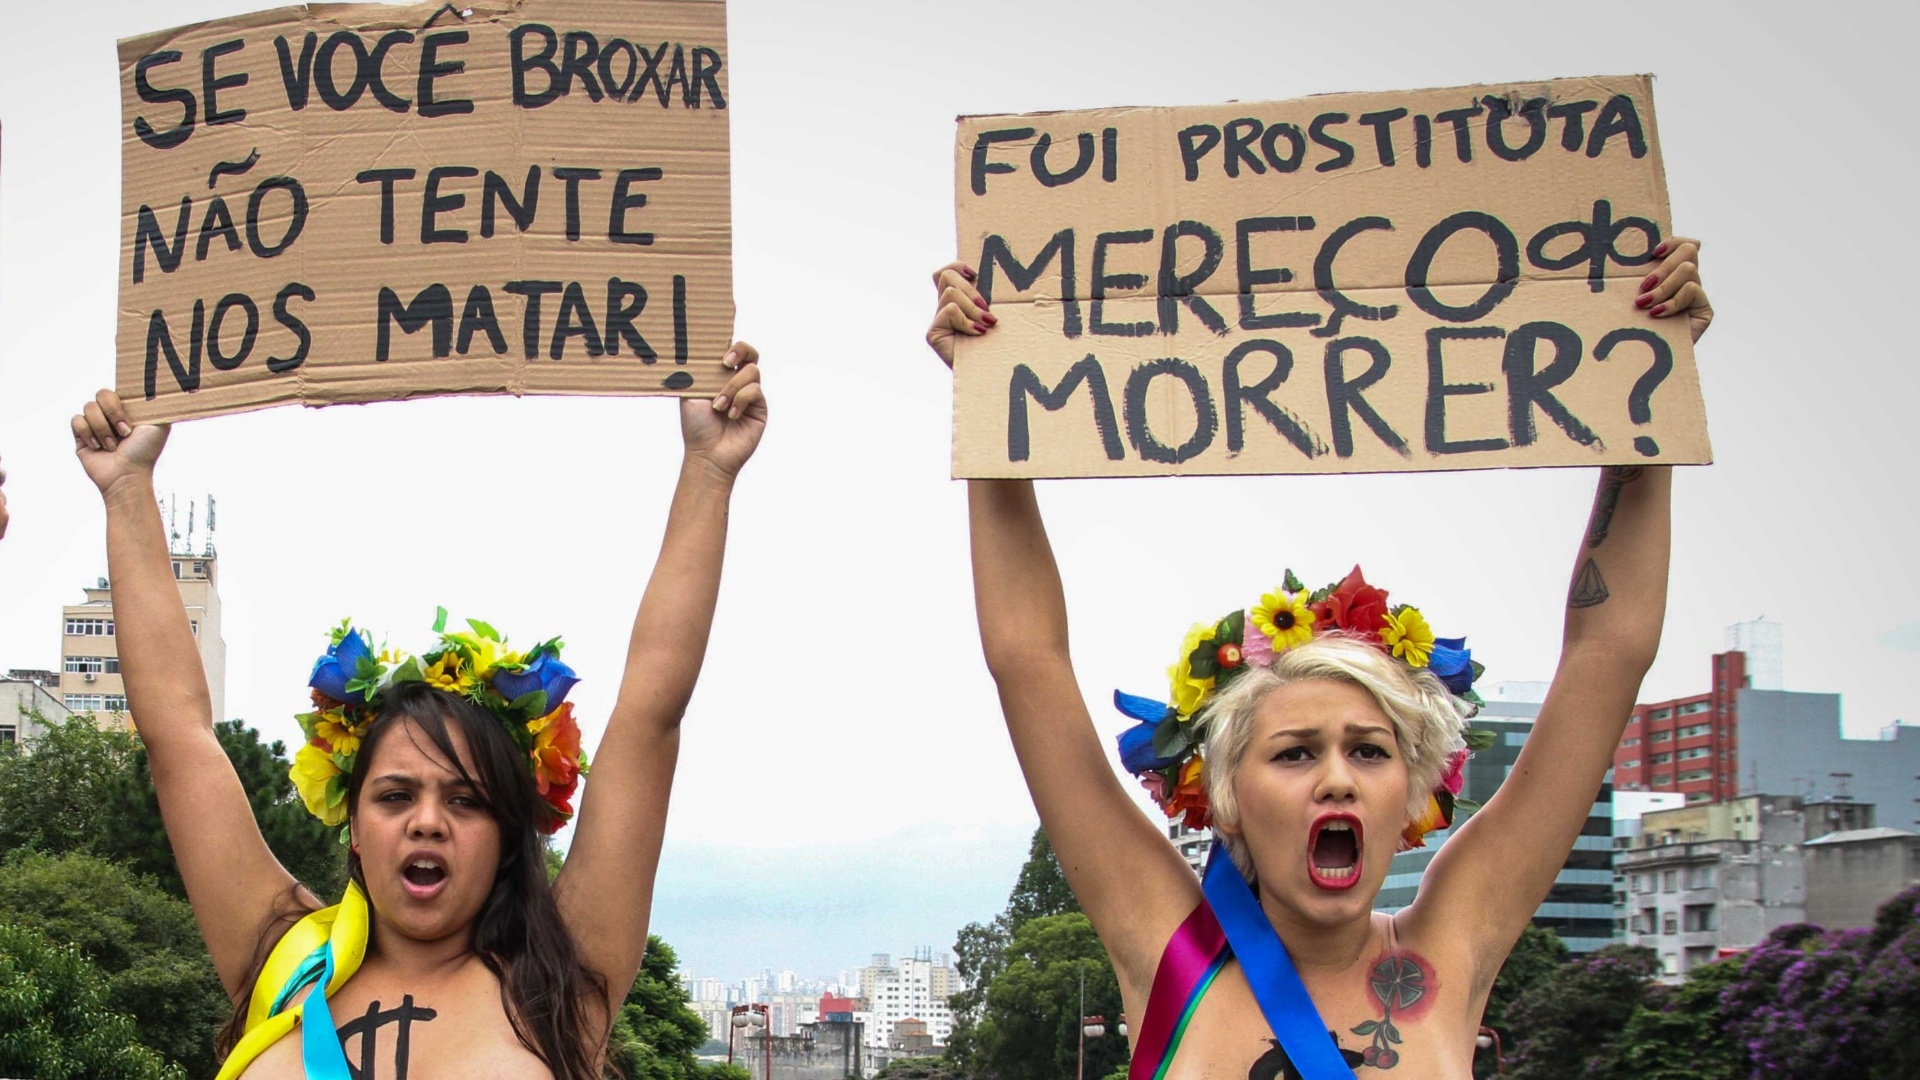 31.jan.2013 - Ativistas do grupo feminista Femen Brasil protestam no bairro da Liberdade, no centro de So Paulo, contra os assassinatos em srie ocorridos na zona leste da capital paulista. Eduardo Sebastio do Patrocnio, 42, foi preso dia 24 de janeiro sob suspeita de ter matado pelo menos cinco mulheres